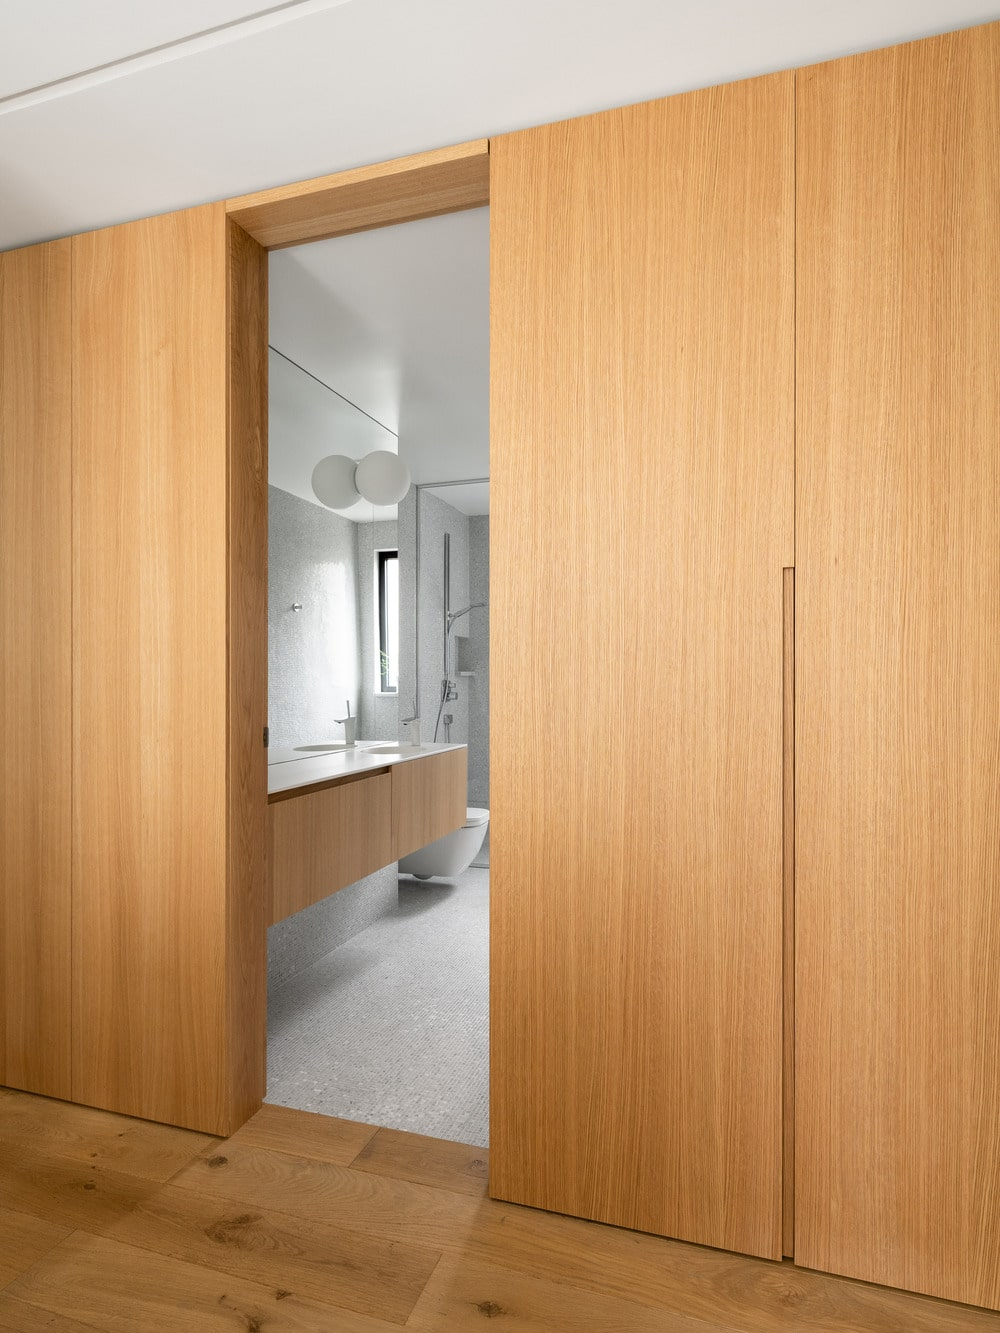 The open door of the bathroom shows the vanity has the same wooden tone as the walls outside.